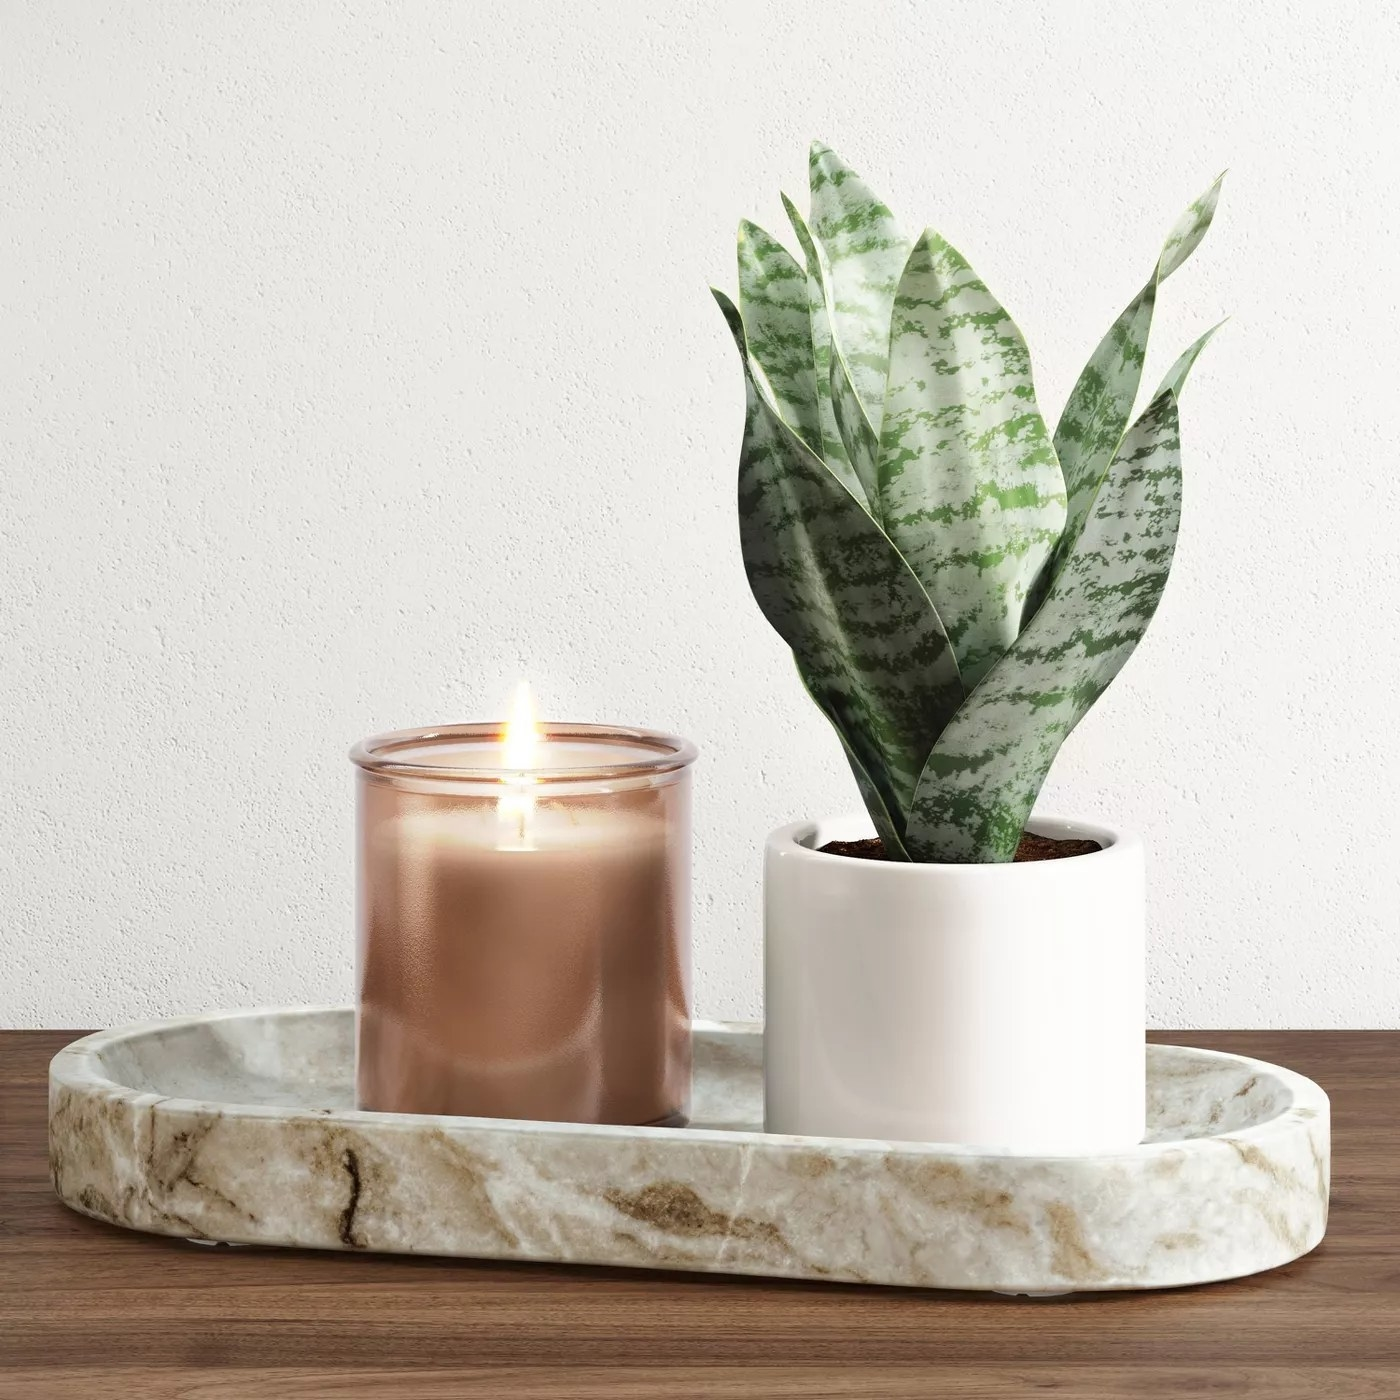 The marble tray holding a small potted plant and a lit candle